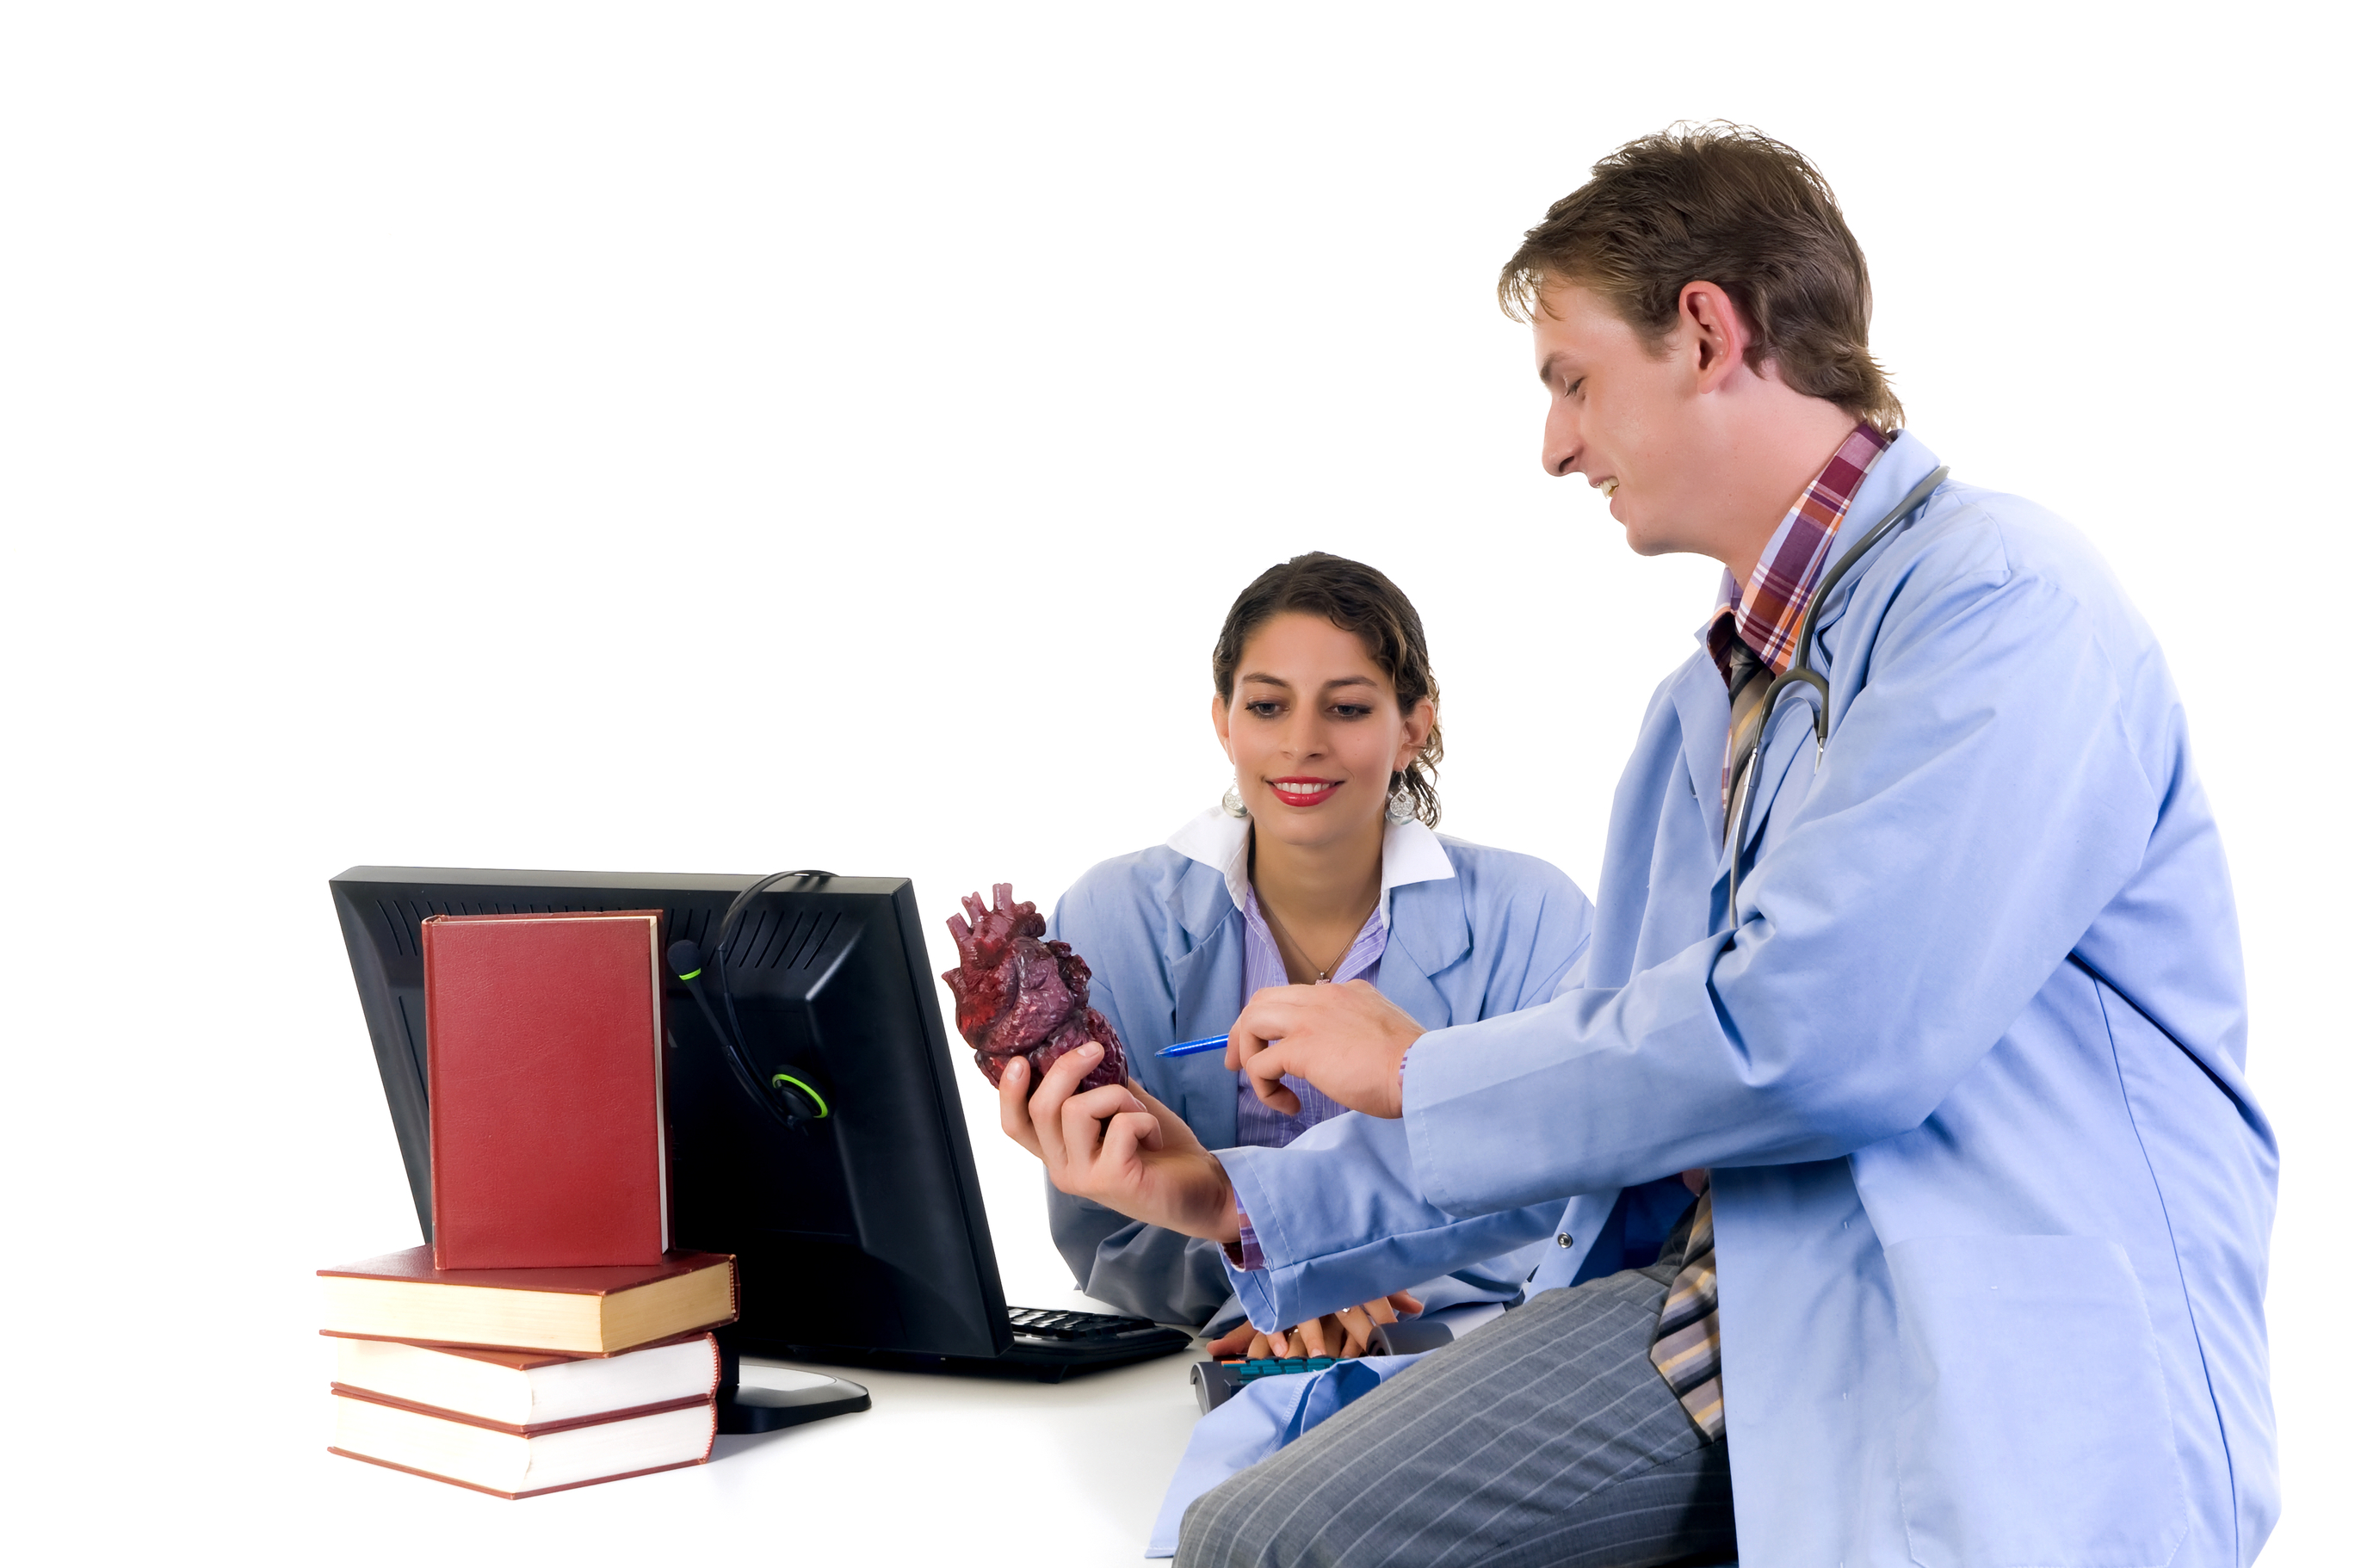 Nurses Learning Center Is Offering Free One On One Tutoring For The Hesi Exam Newswire